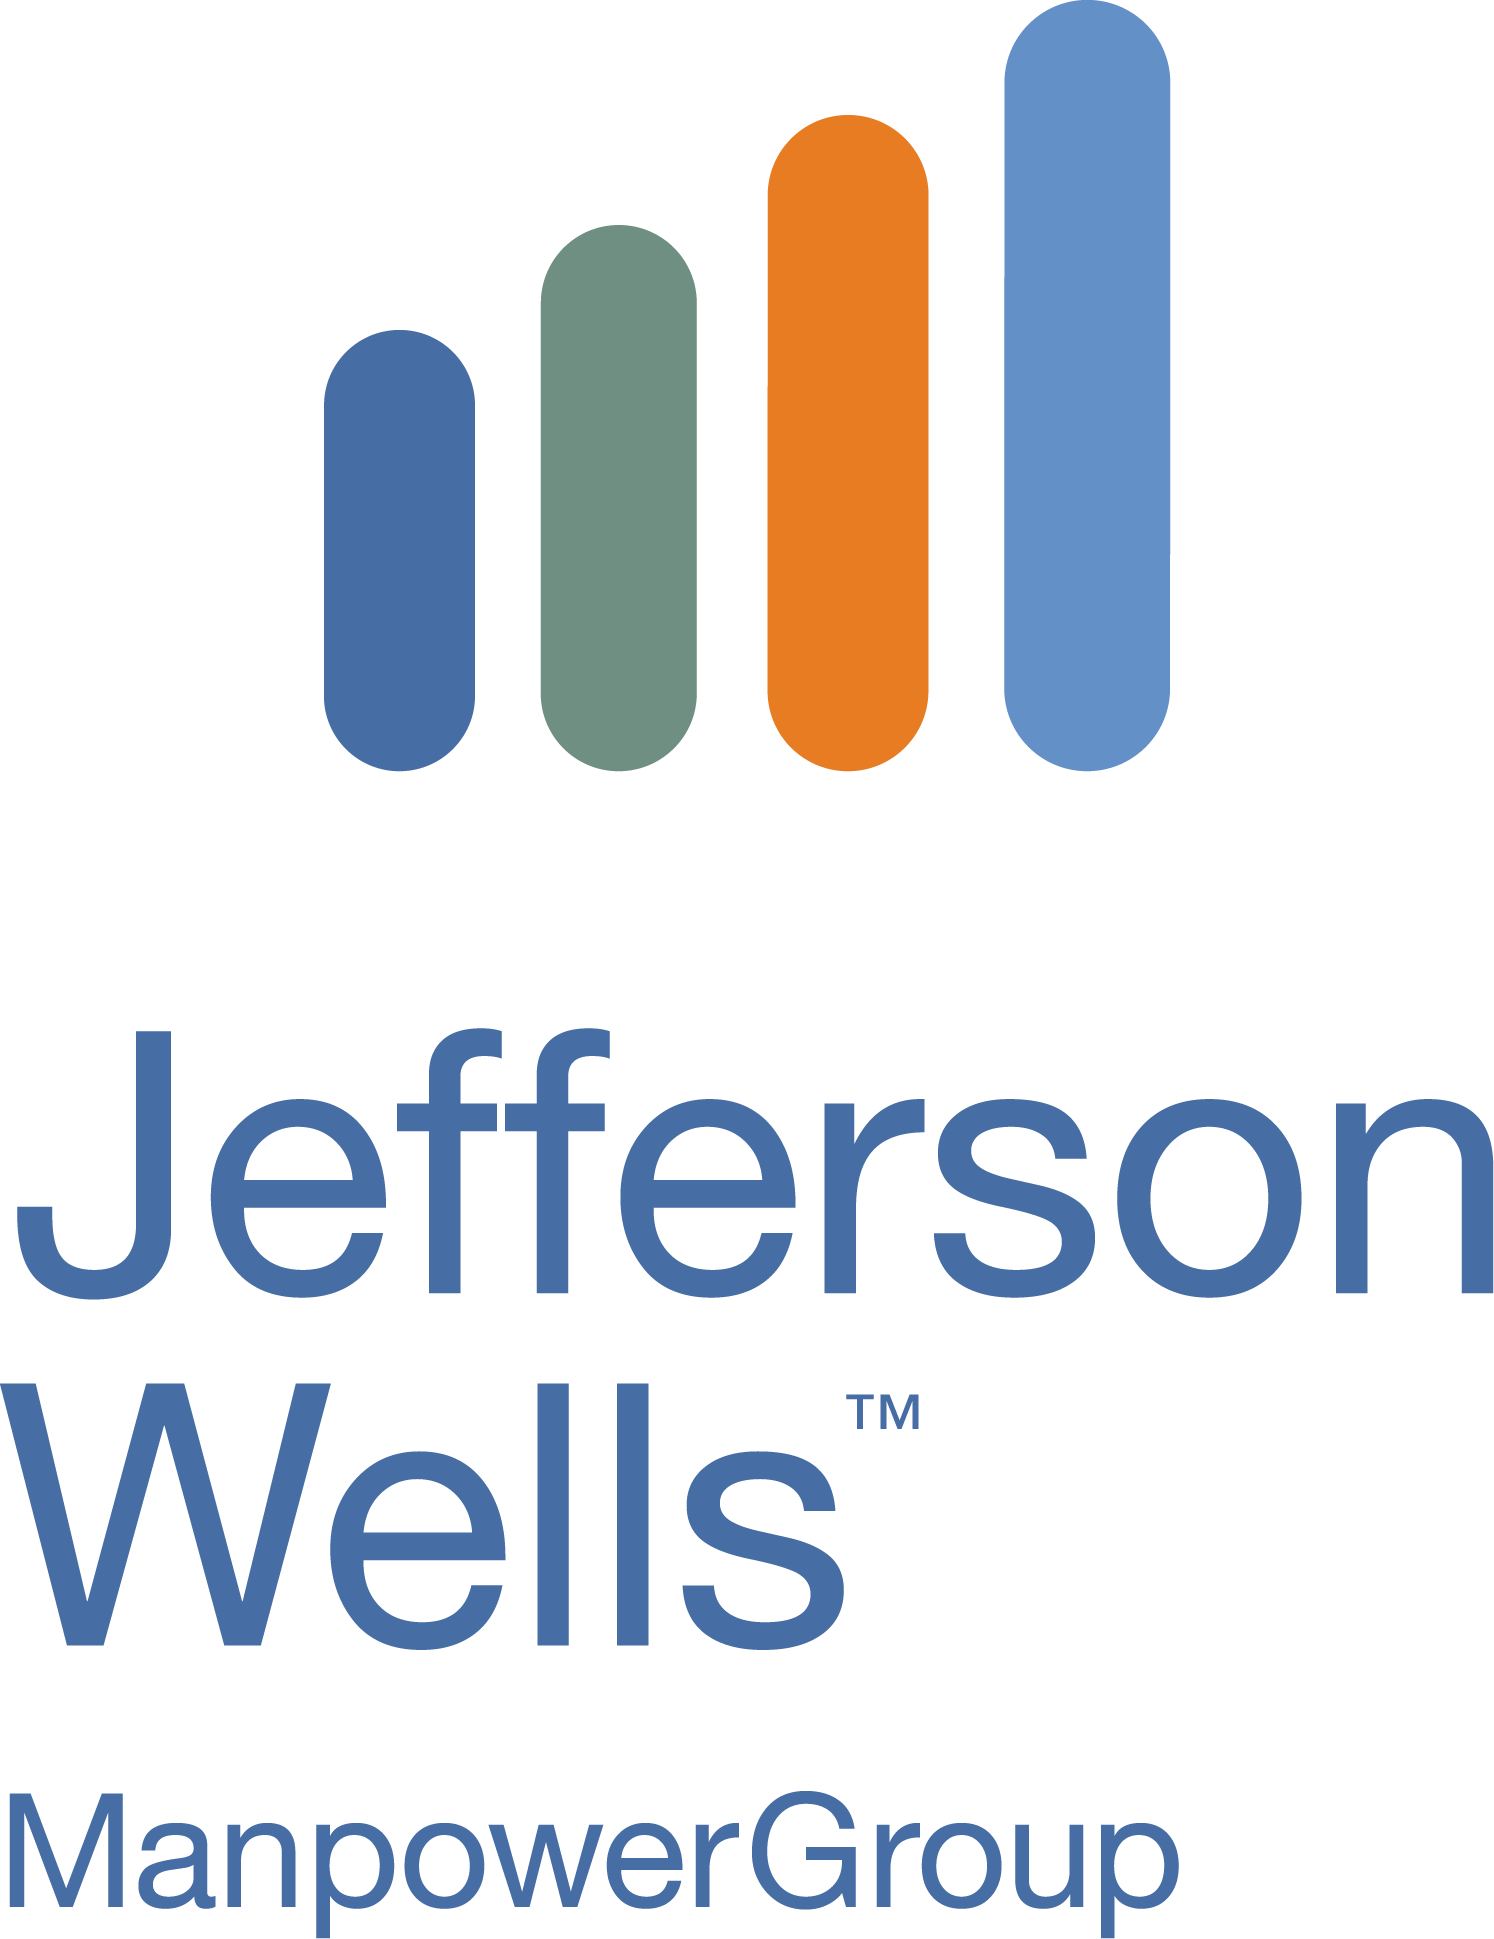 Jefferson Wells rekruttering